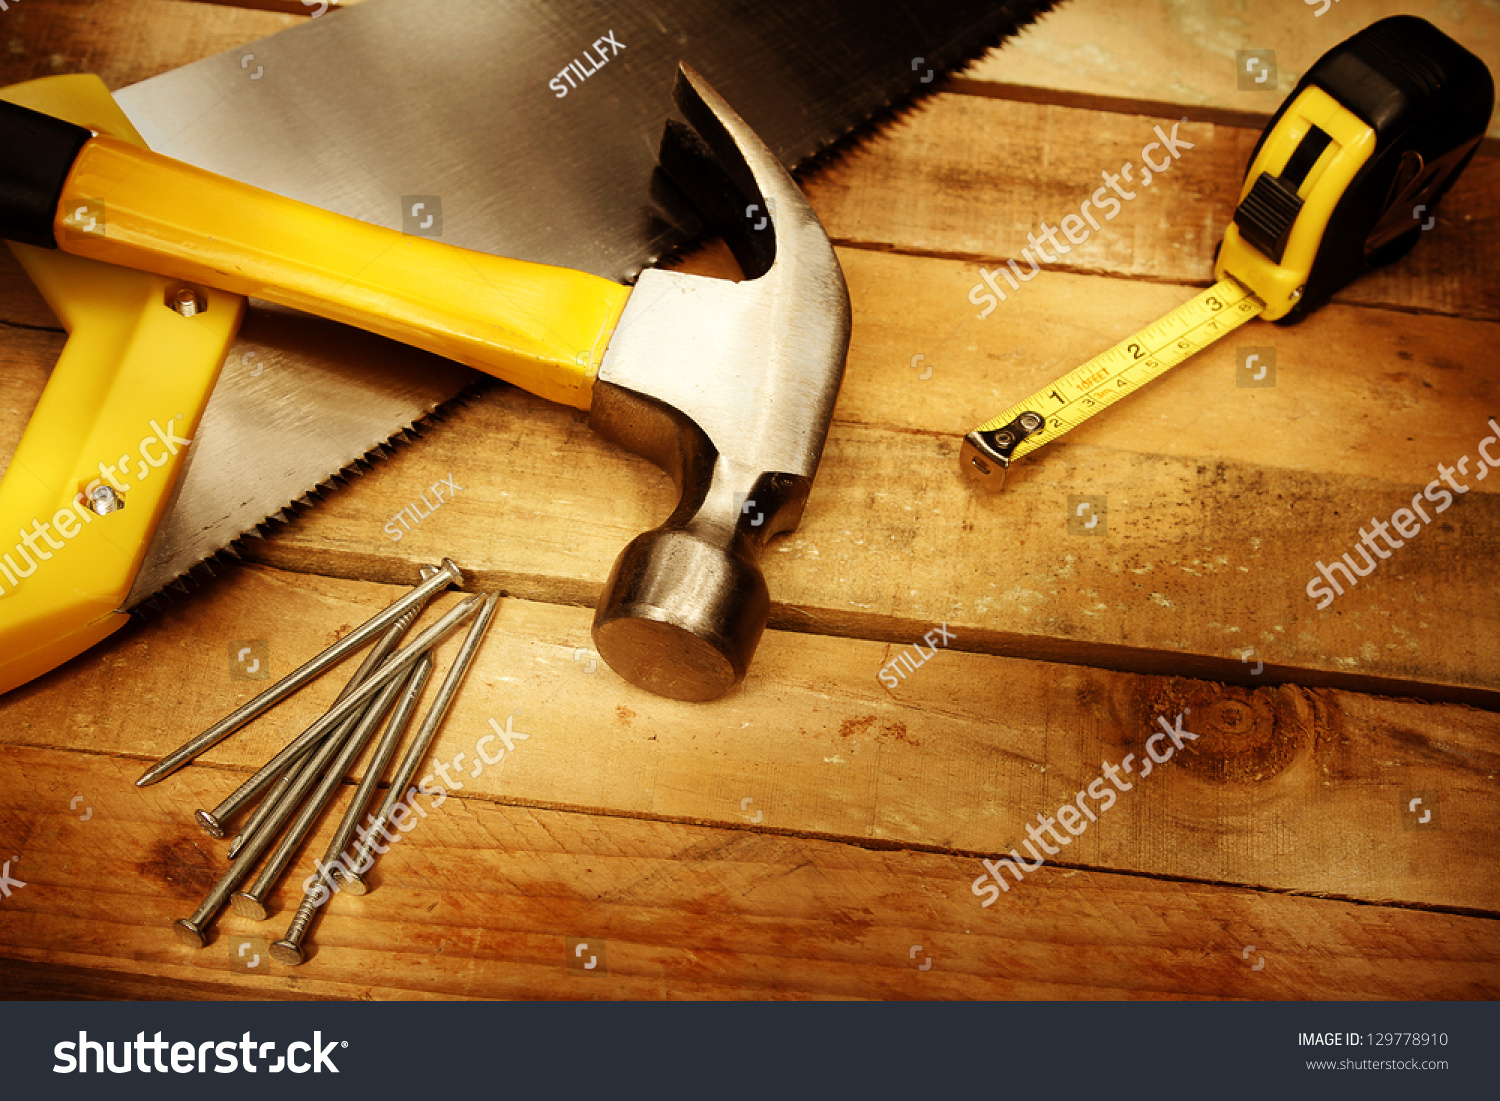 Hammer Nails Tape Measure Saw On Stock Photo 129778910 ...